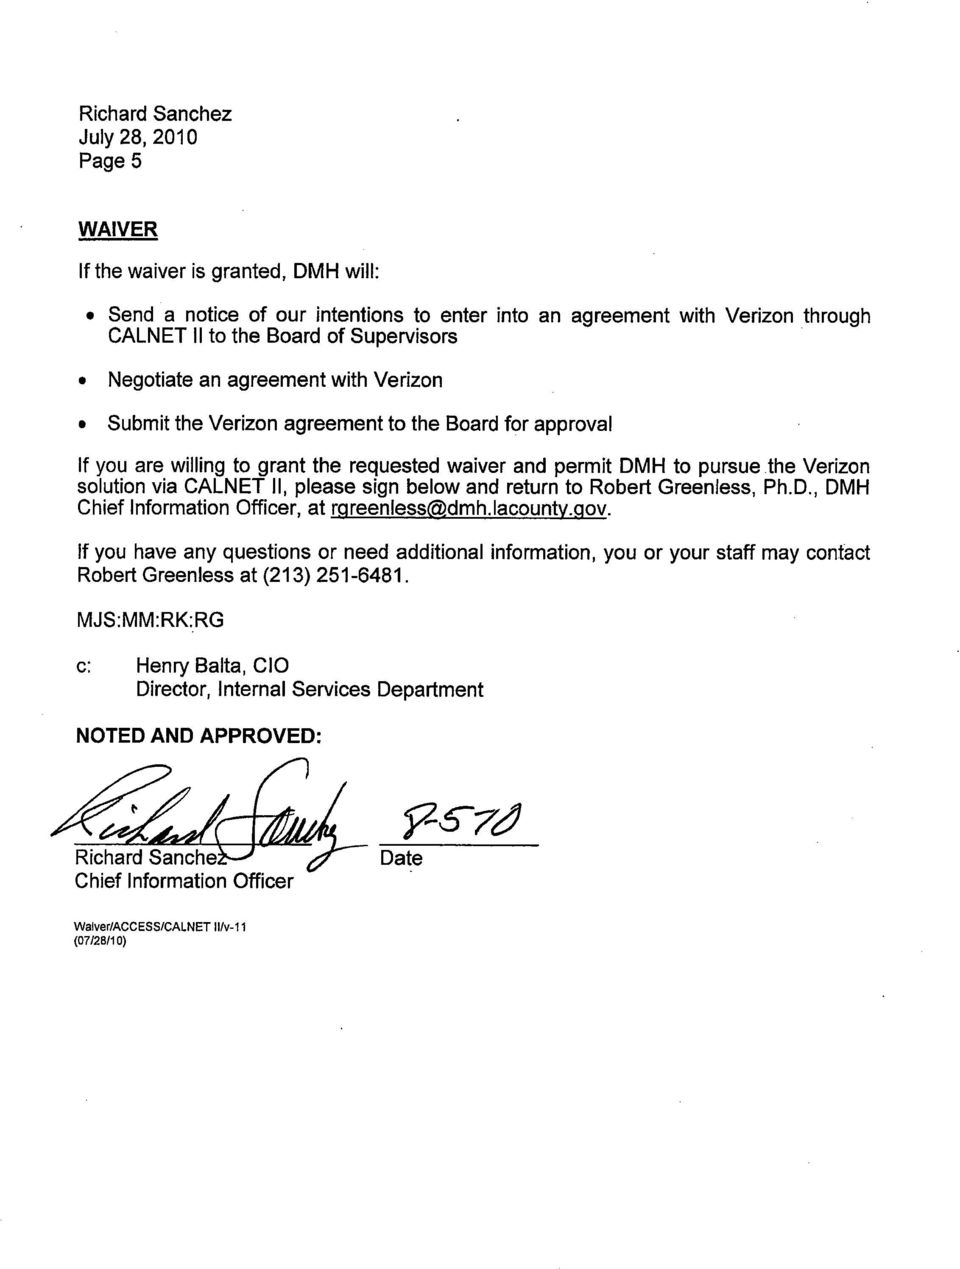 Submit the Verizon agreement to the Board for approval If you are wiling to grant the requested waiver and permit DMH to pursue the Verizon solution via CALNET II, please sign below and return to